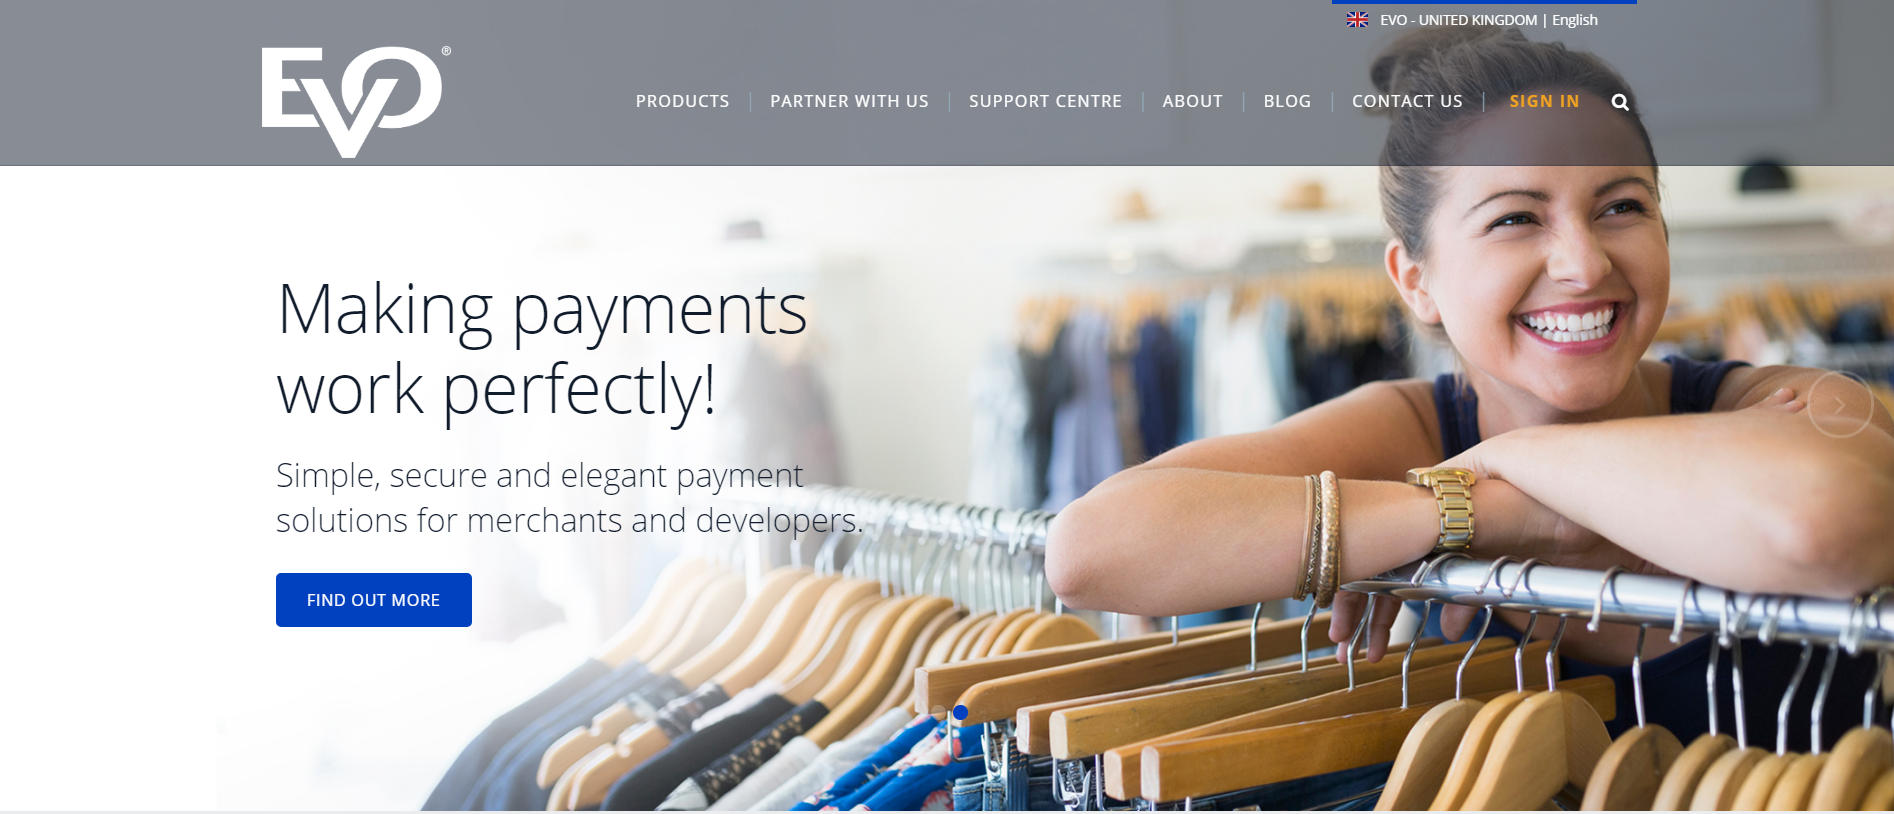 Card Machine Providers For Small Businesses 22